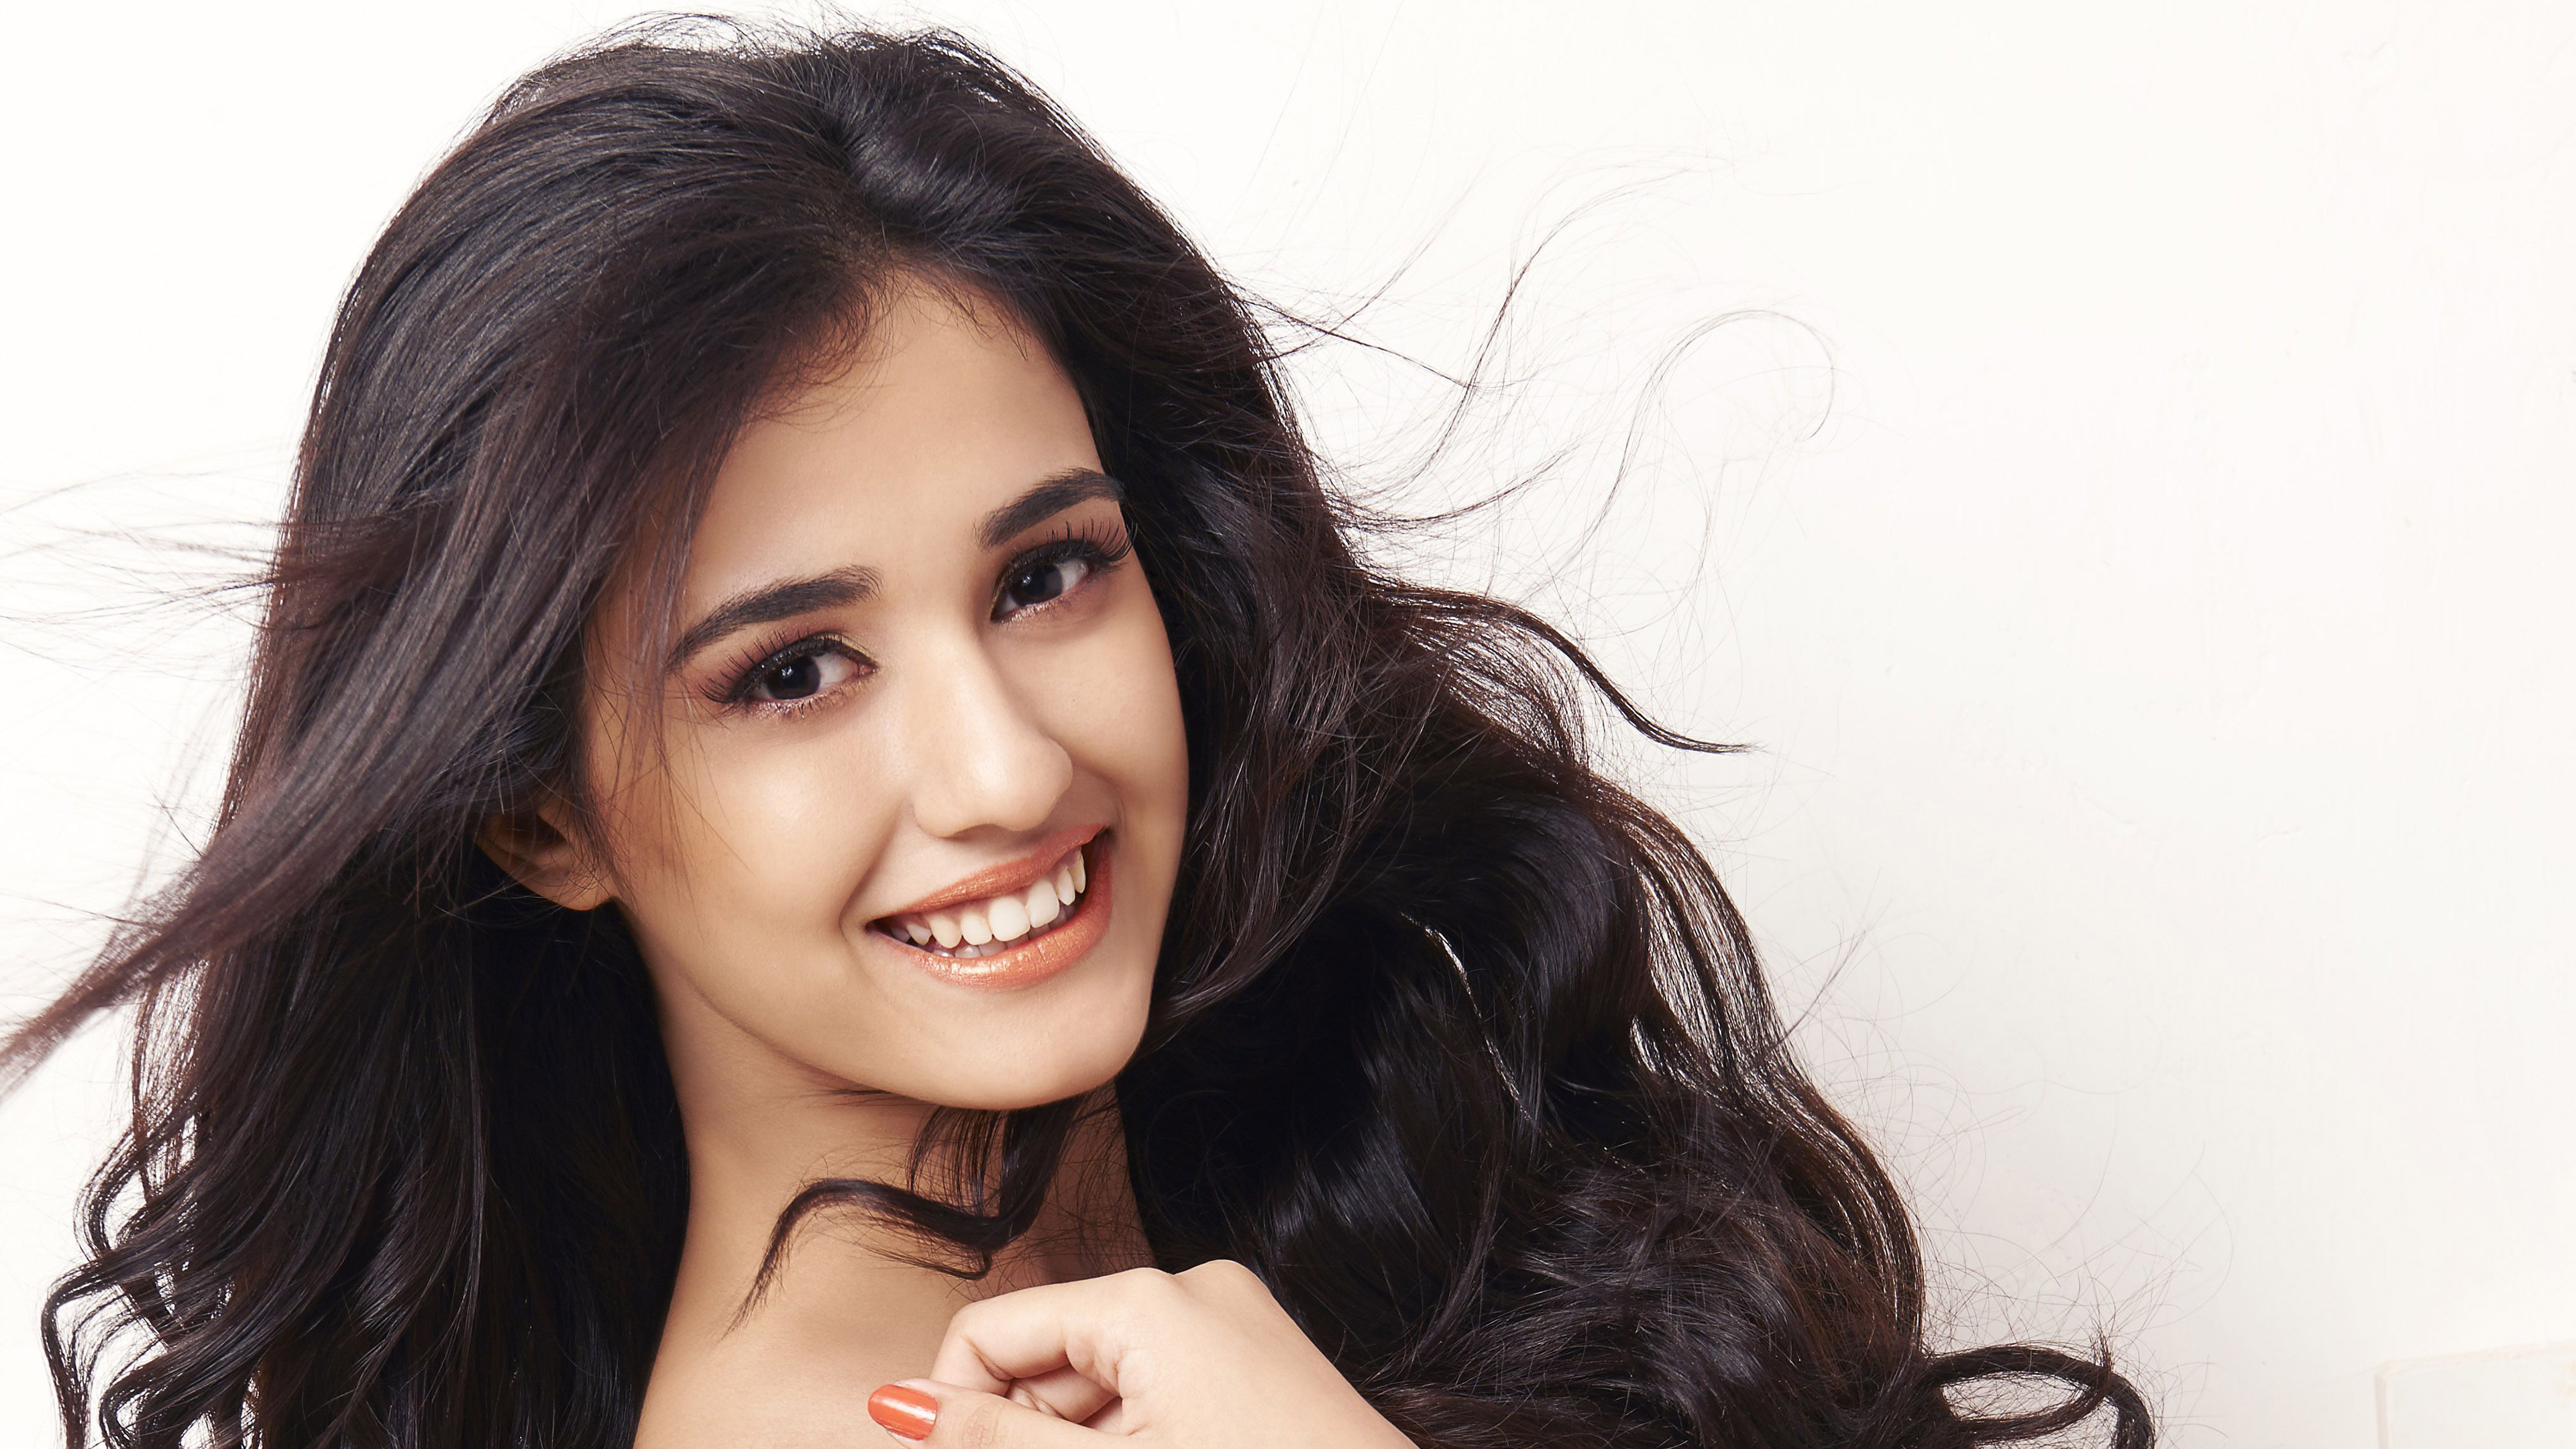 2016 Disha Patani 4k, HD Indian celebrities, 4k Wallpapers, Images, Backgrounds, Photos and Pictures